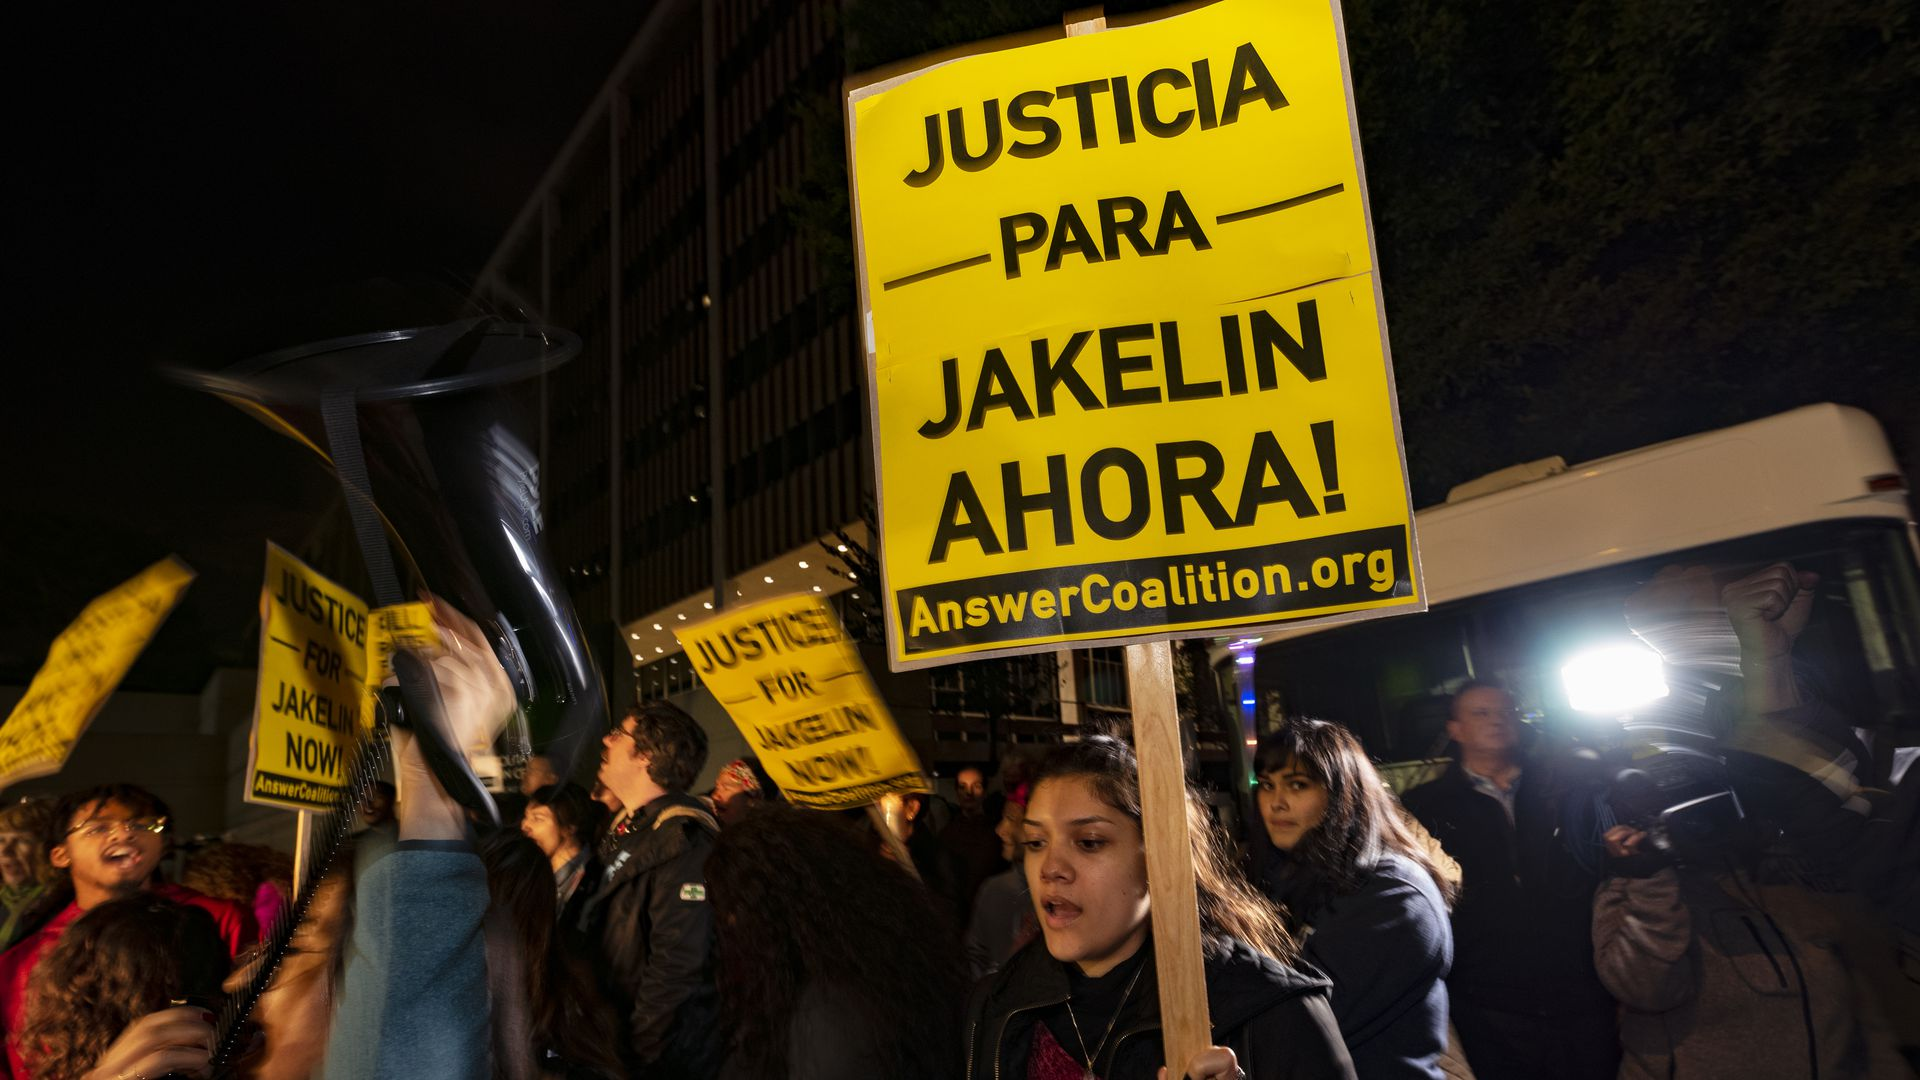 Protestor carrying Justice for Jakelin sign